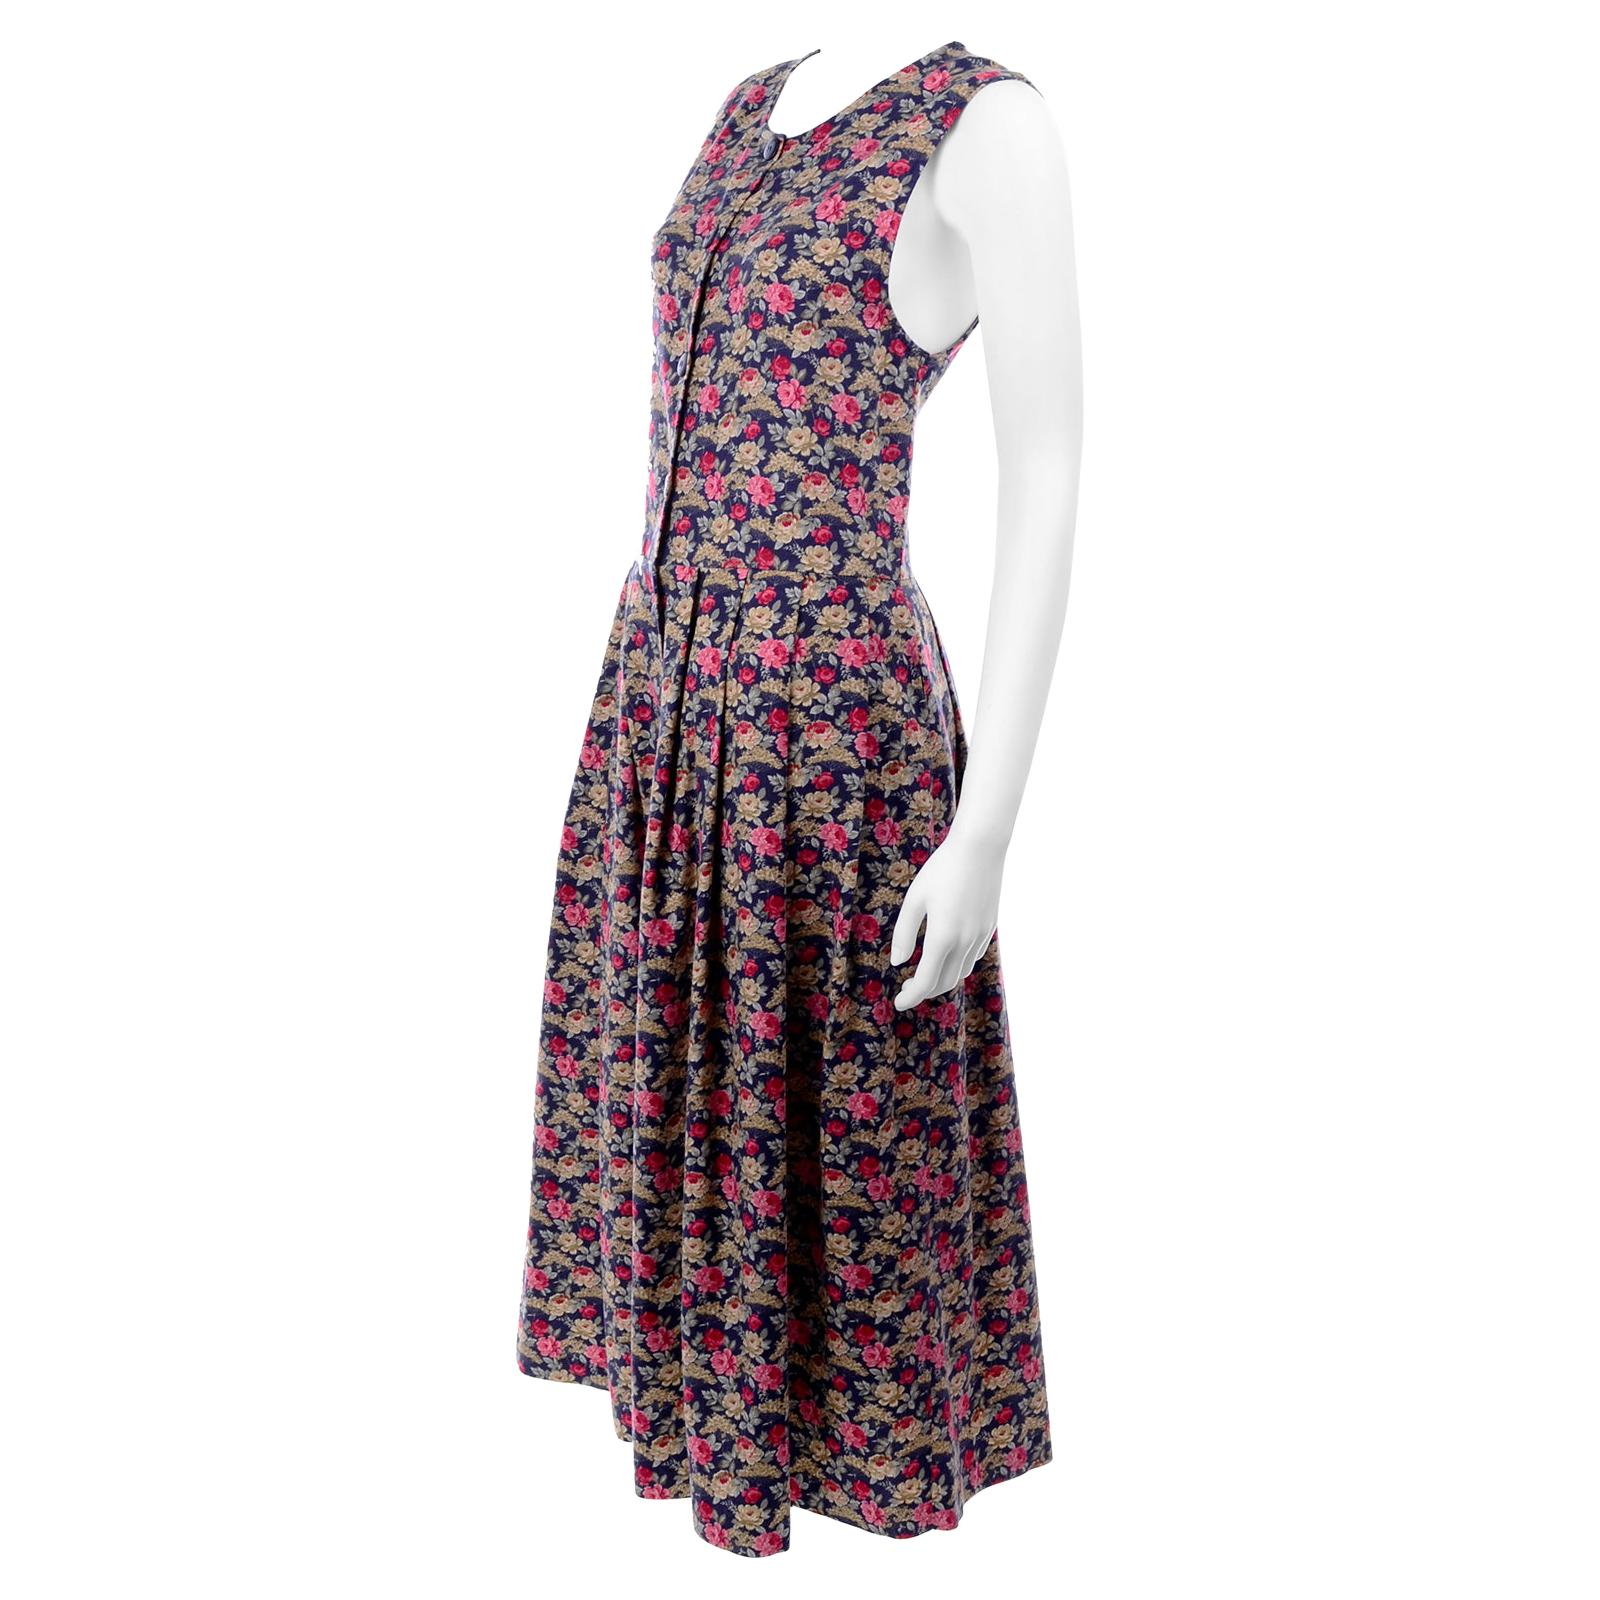 1980s Vintage Laura Ashley Navy Blue Cotton Dress W/ Pink & Red Flowers